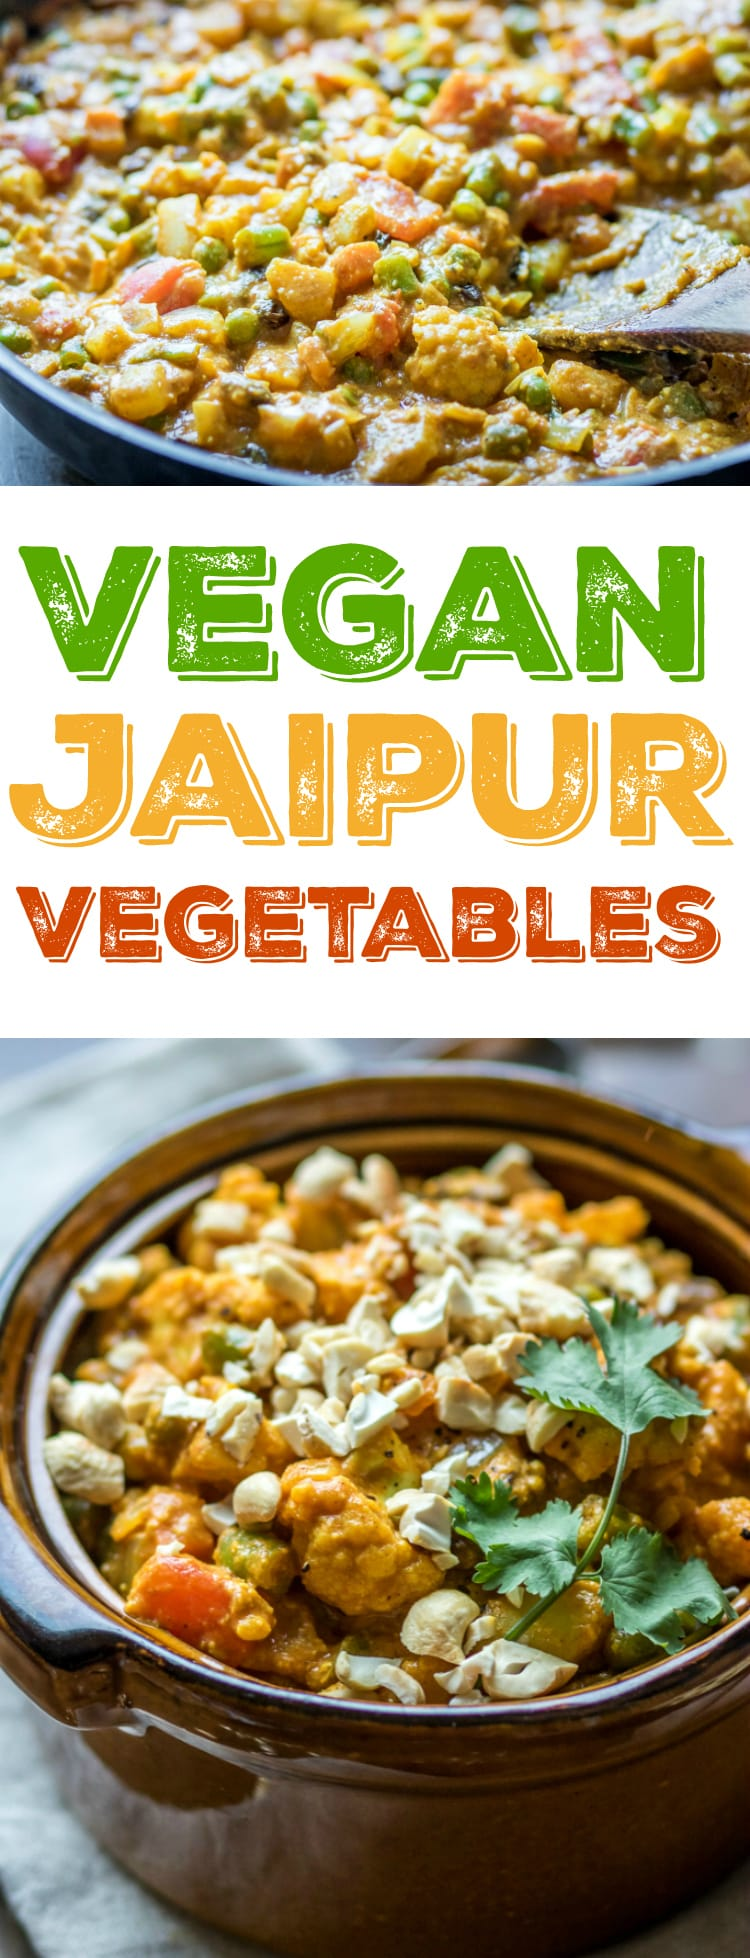 Tender veggies and a creamy cashew sauce make this dish of Jaipur Vegetables irresistible! Made with vegan ingredients and just a touch of coconut cream, you can feel good about this easy dinner.